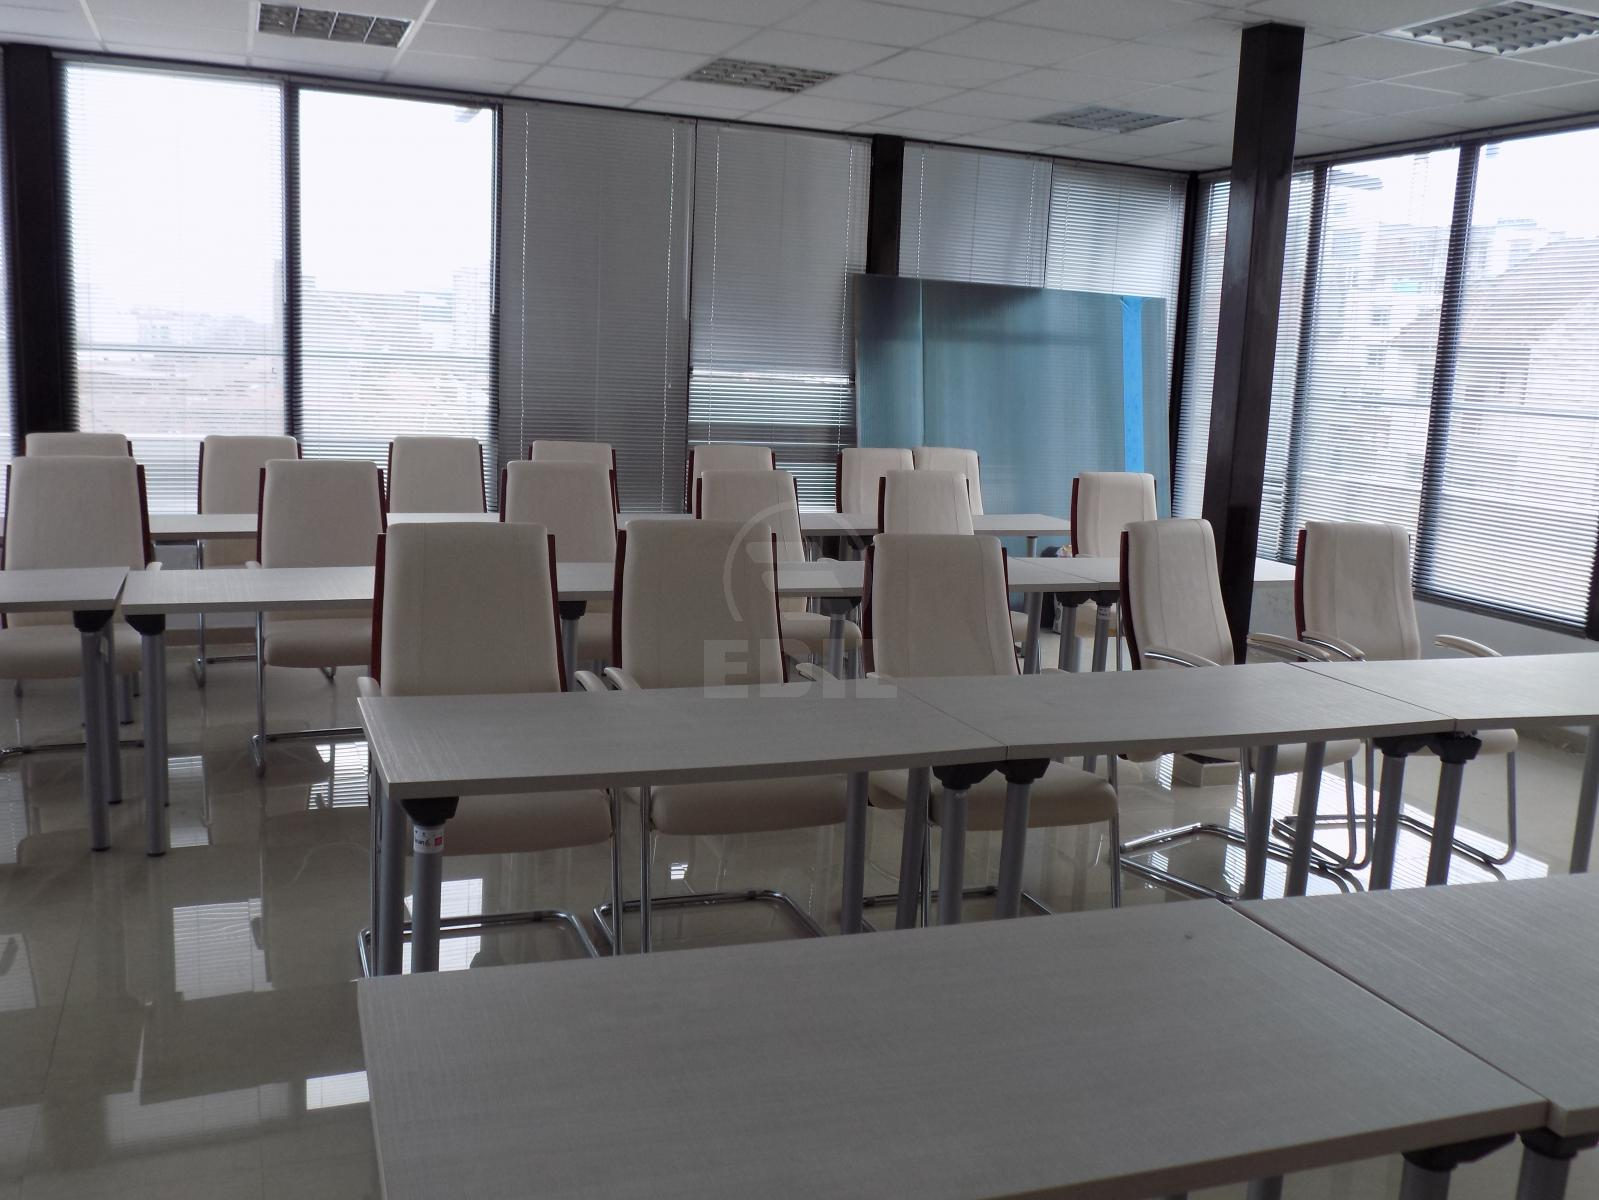 Commercial space for rent 11 rooms, SCCJ297293-8